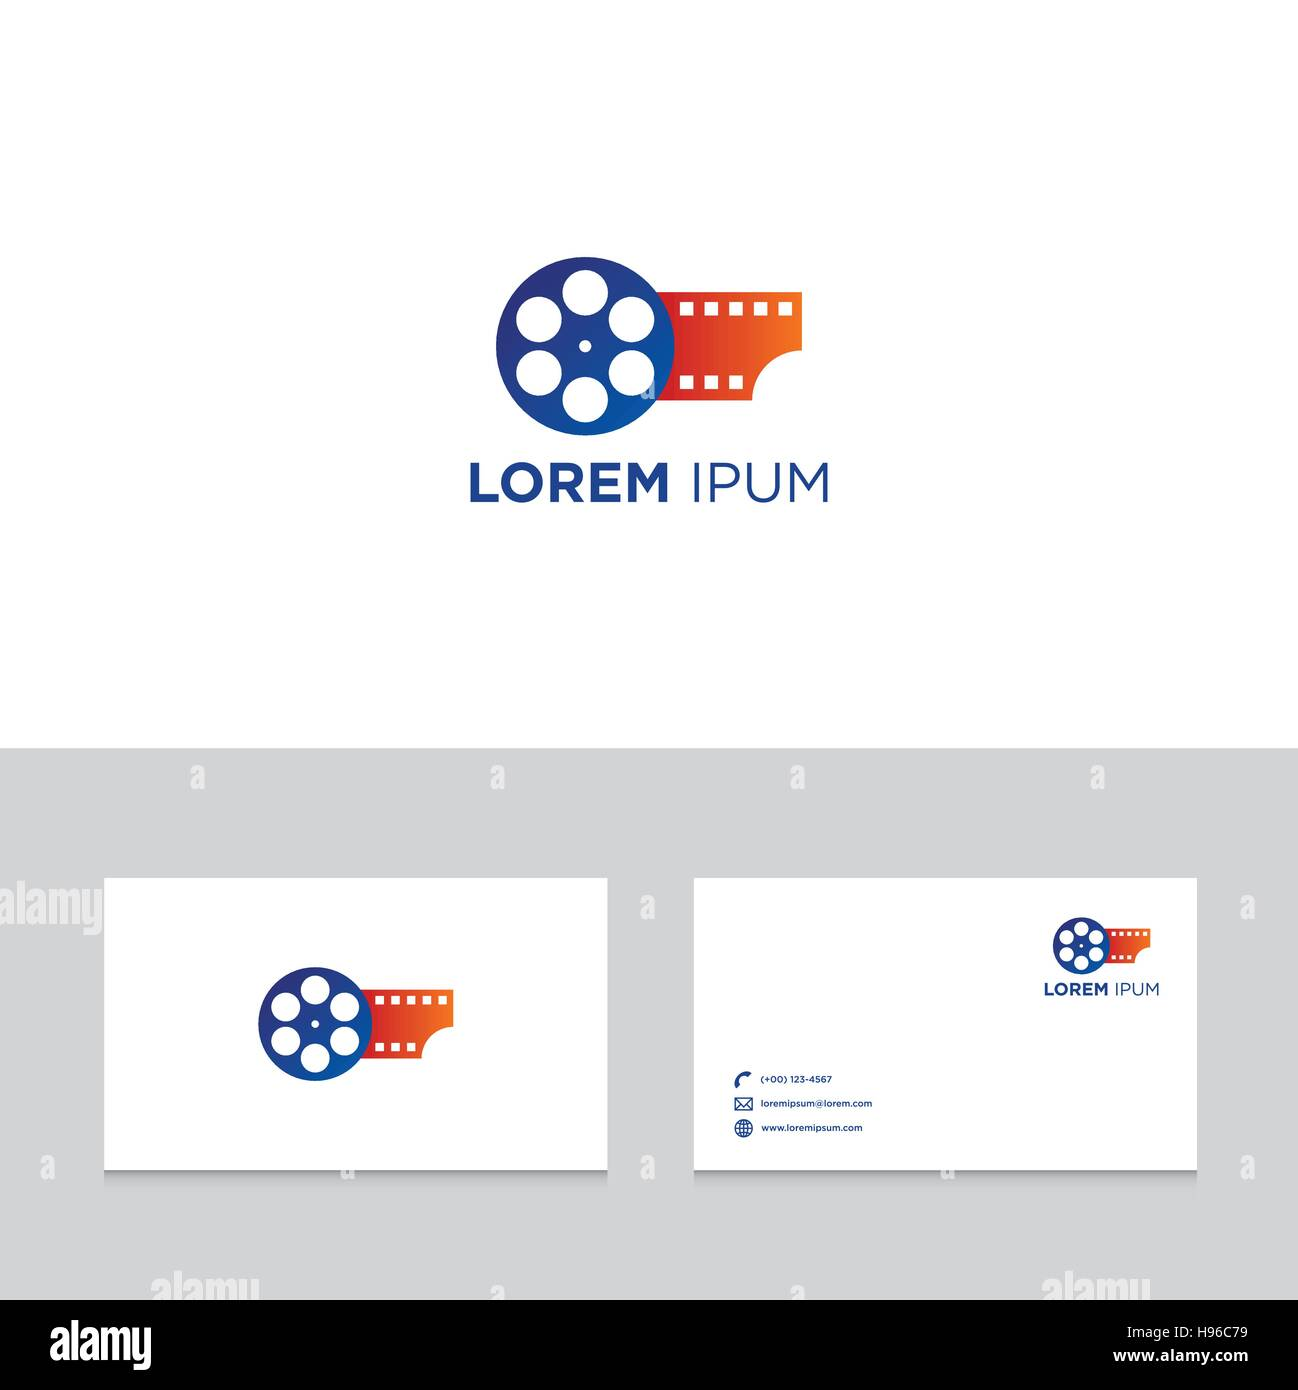 Logo design elements with business card template film movie reel logo design elements with business card template film movie reel abstract modern symbol vector illustration reheart Gallery